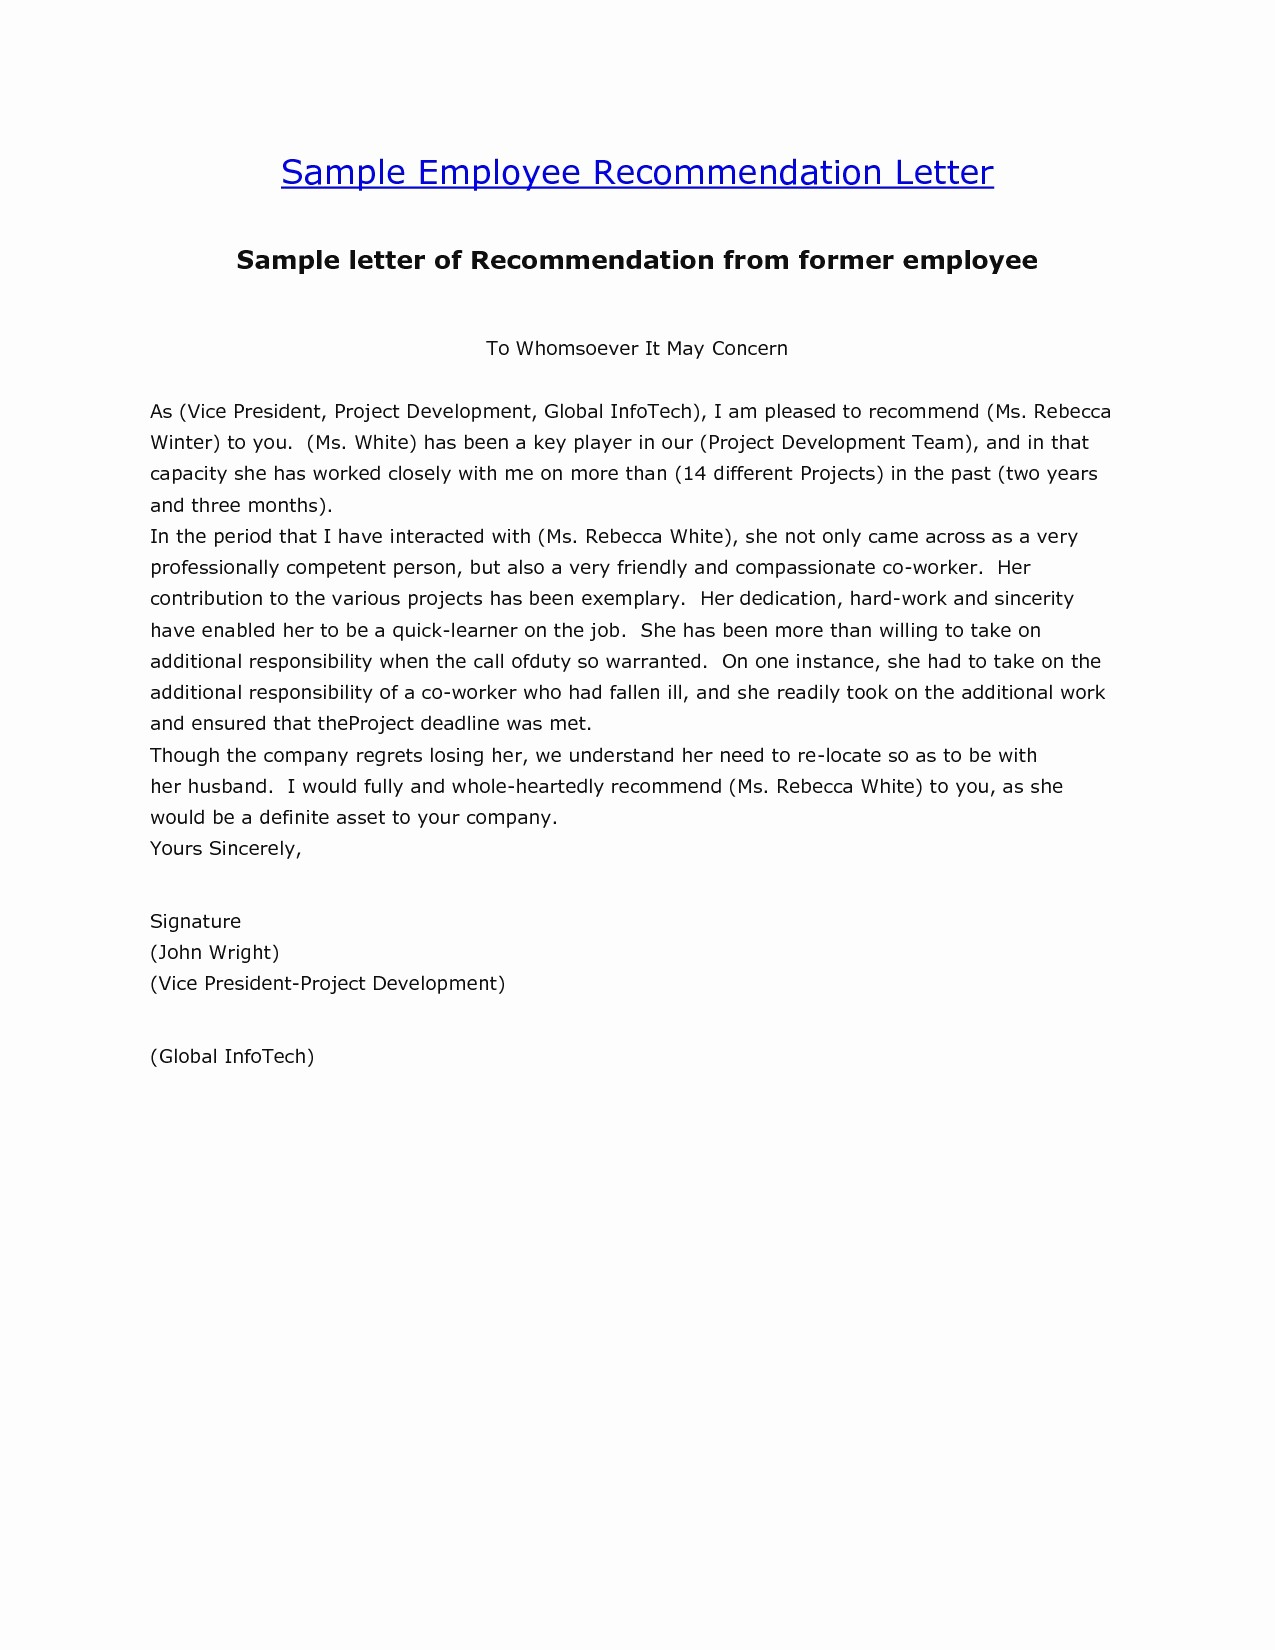 Letter Of Recommendation Sample Template Best Of [free] Letter Of Re Mendation Examples Samples